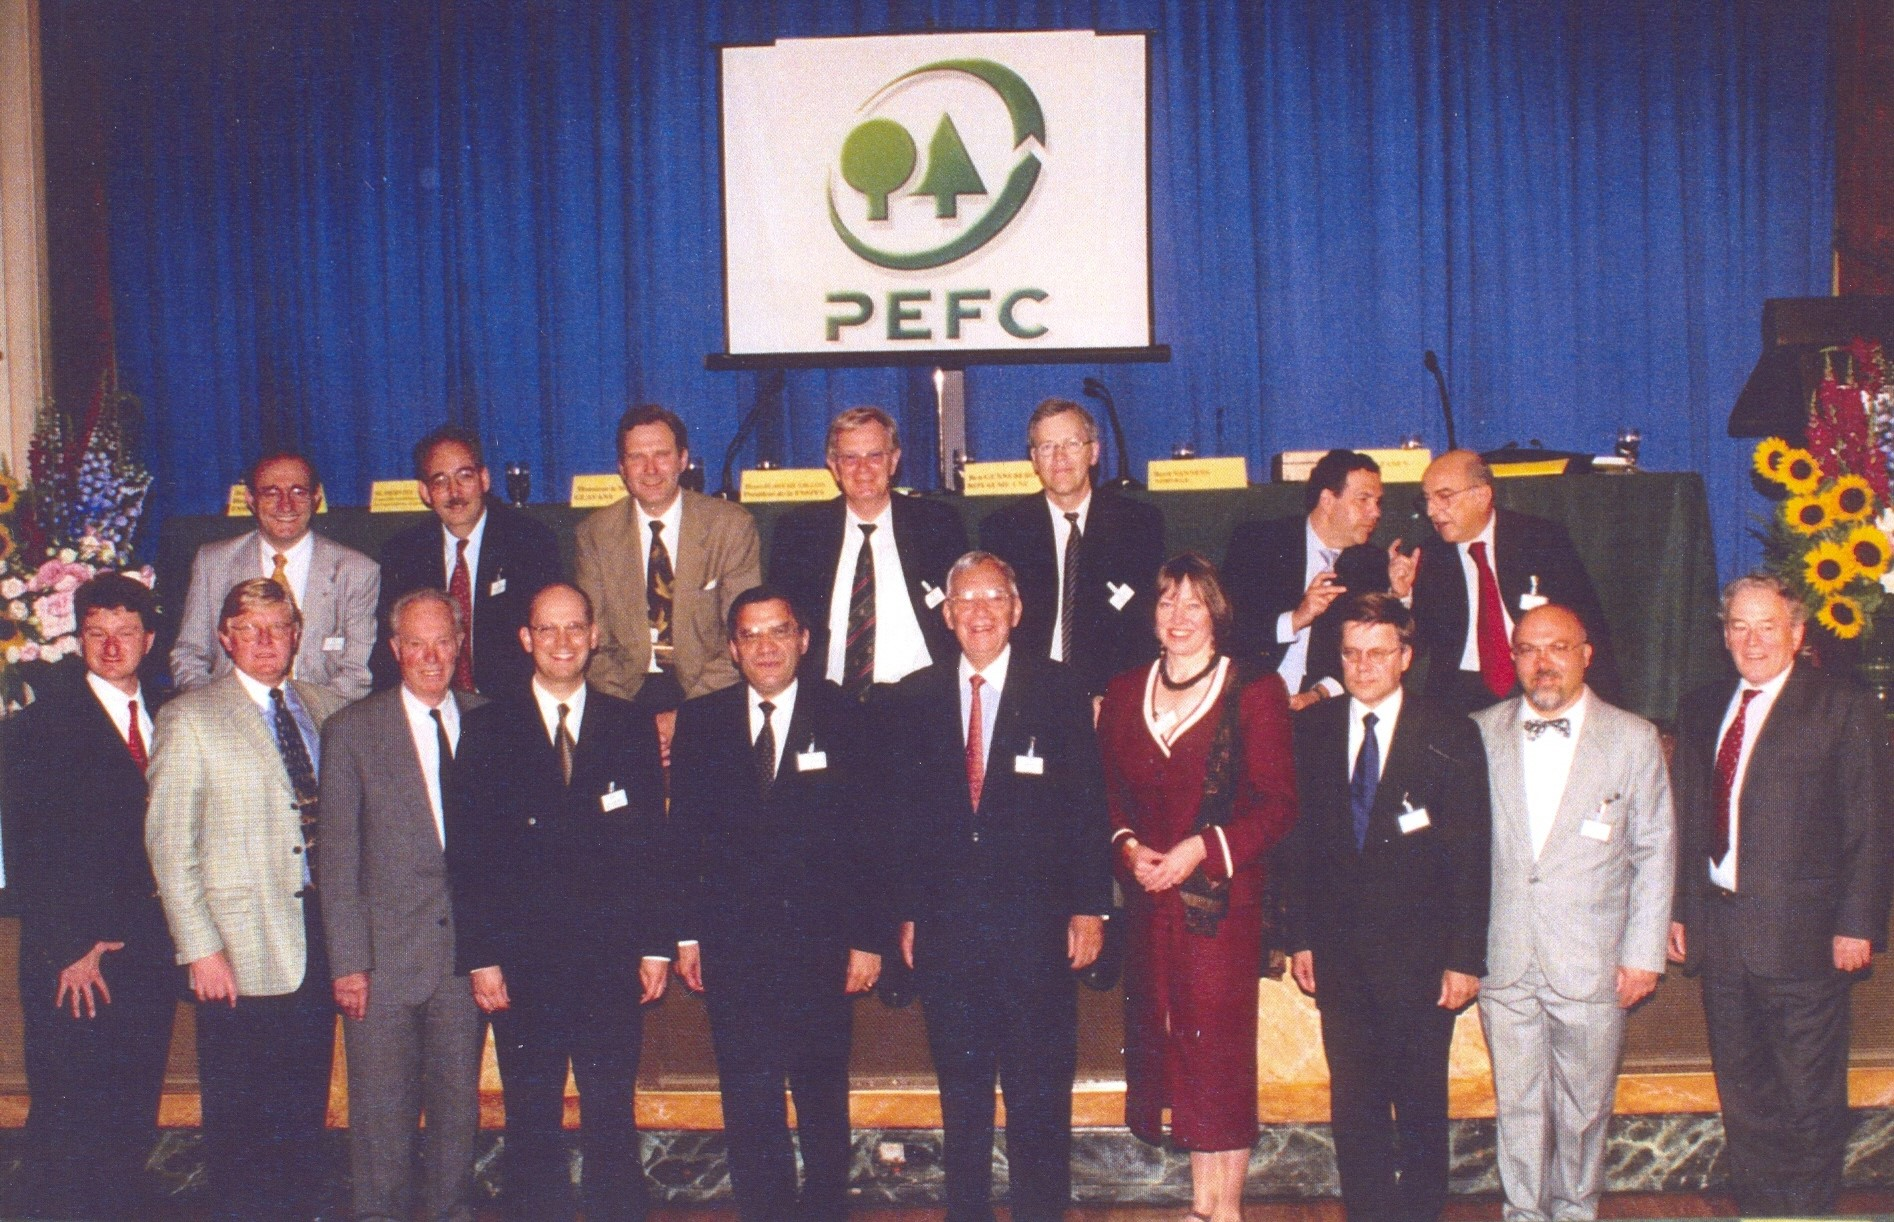 PEFC 20th anniversary: a year of celebrations